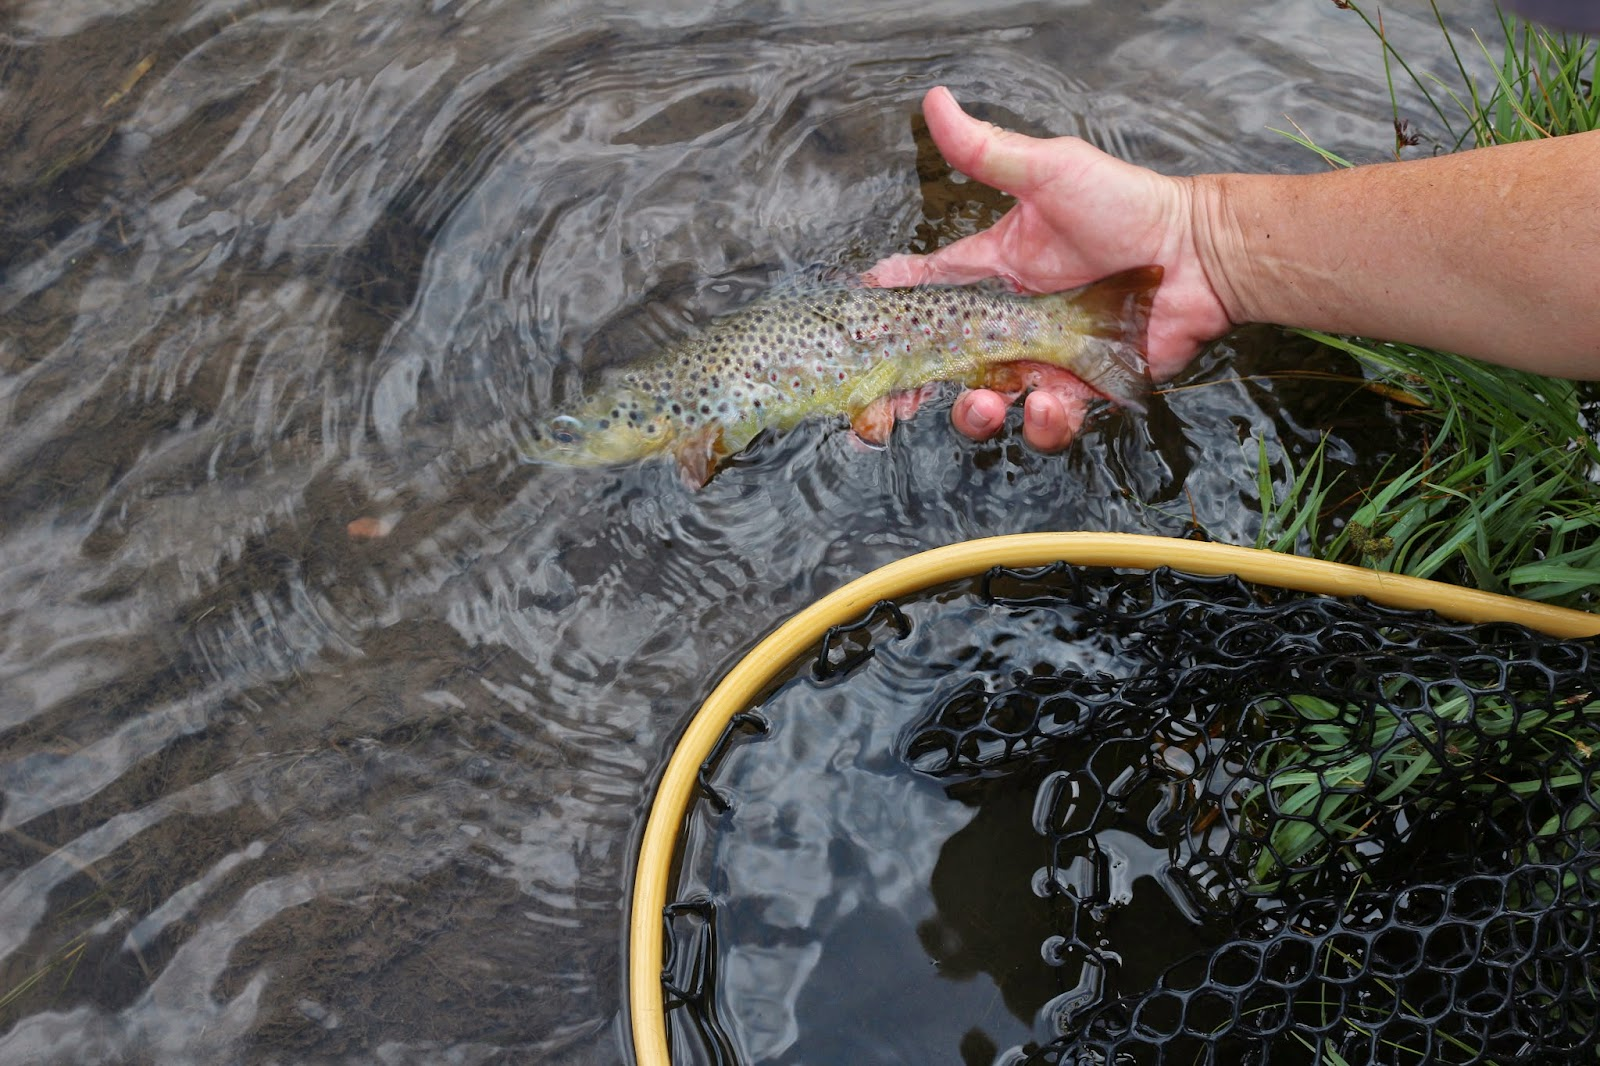 Fly+fish+the+Roaring+Fork+River+in+Colorado+with+Jay+Scott+Outdoors+16.JPG